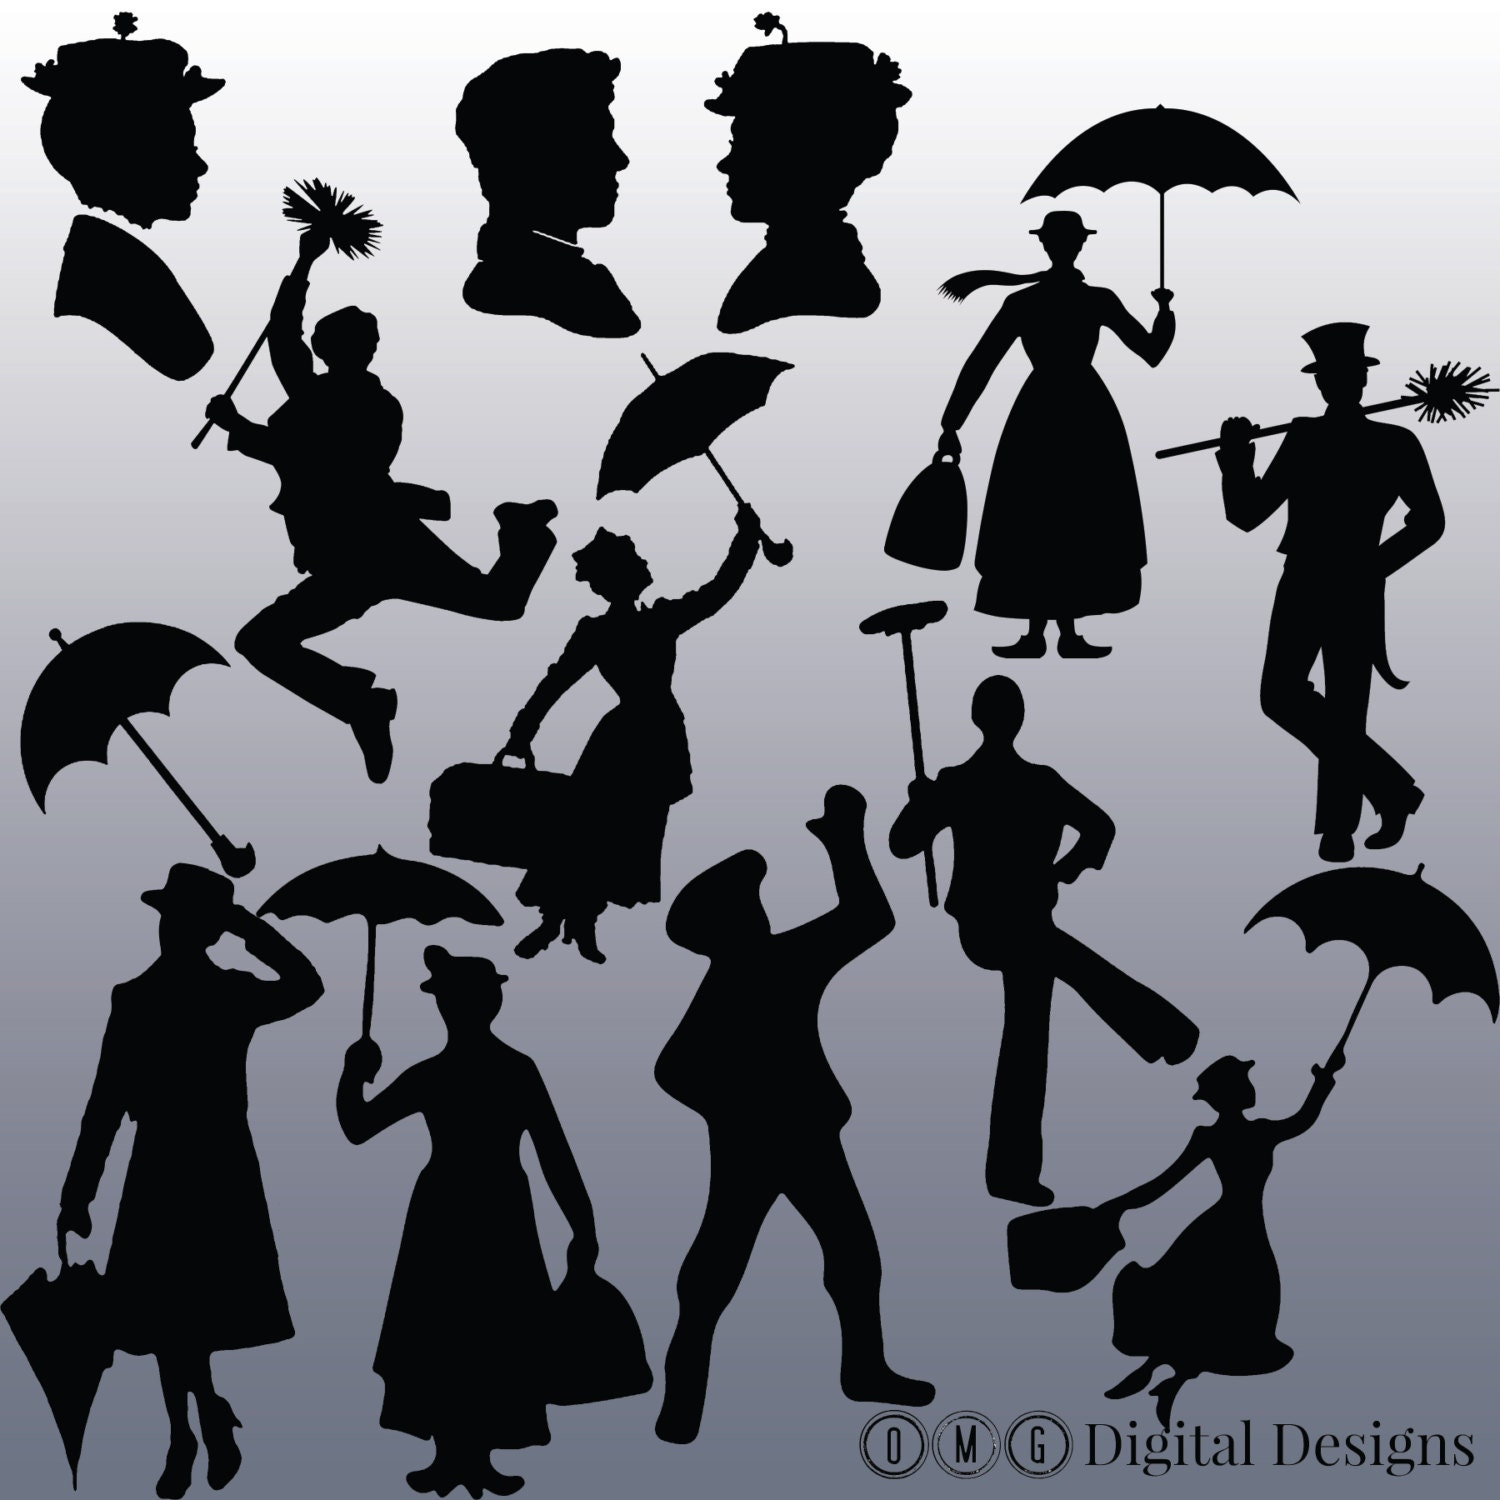 Mary Poppins Chimney Sweep Silhouette Images Mary Poppins Silhouett...